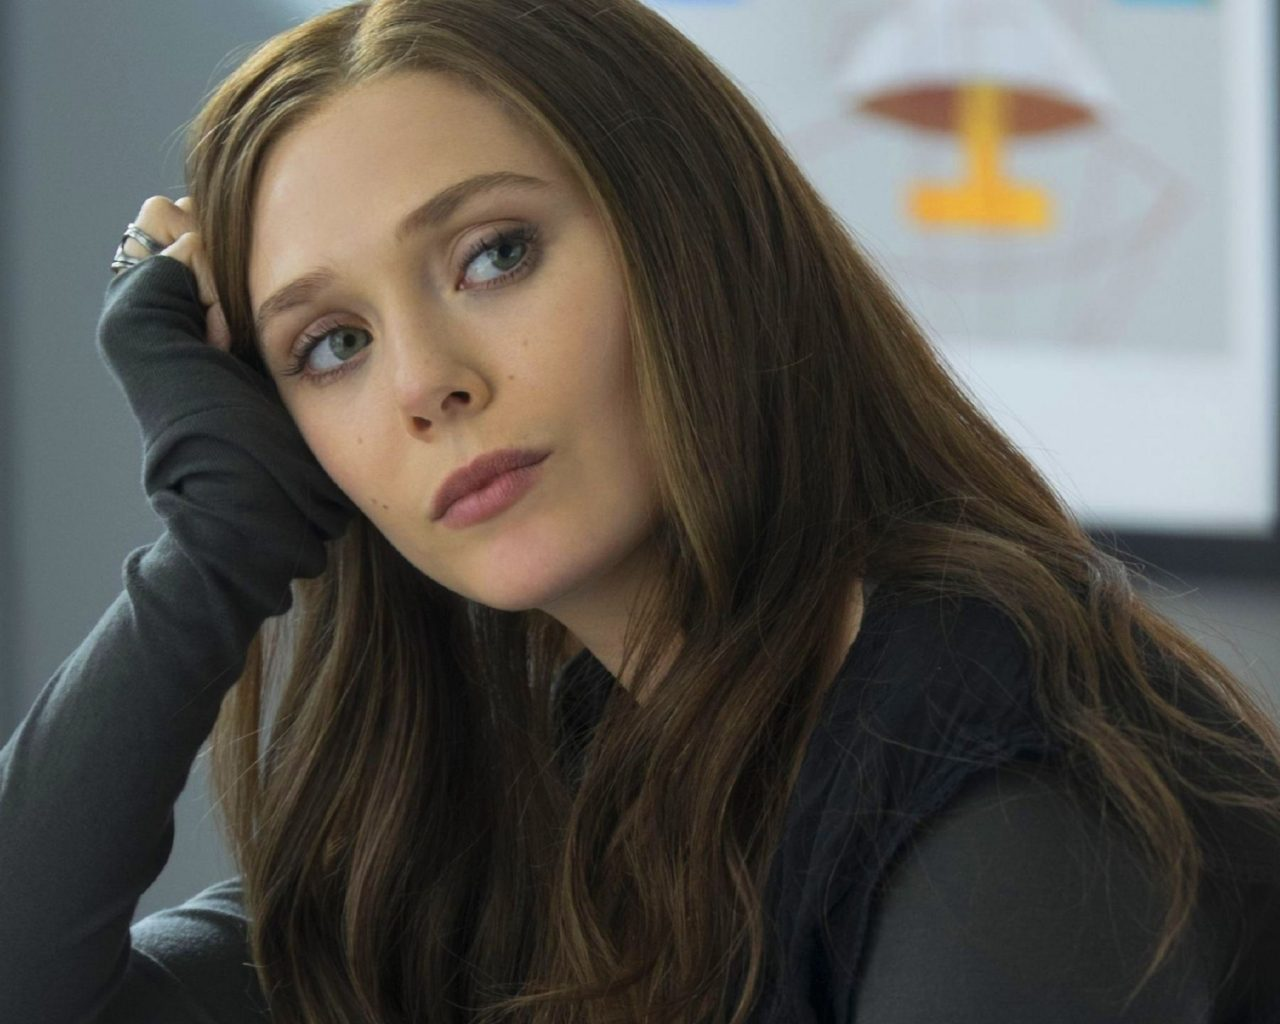 Elizabeth Olsen 2016 HD Wallpapers 1280x1024